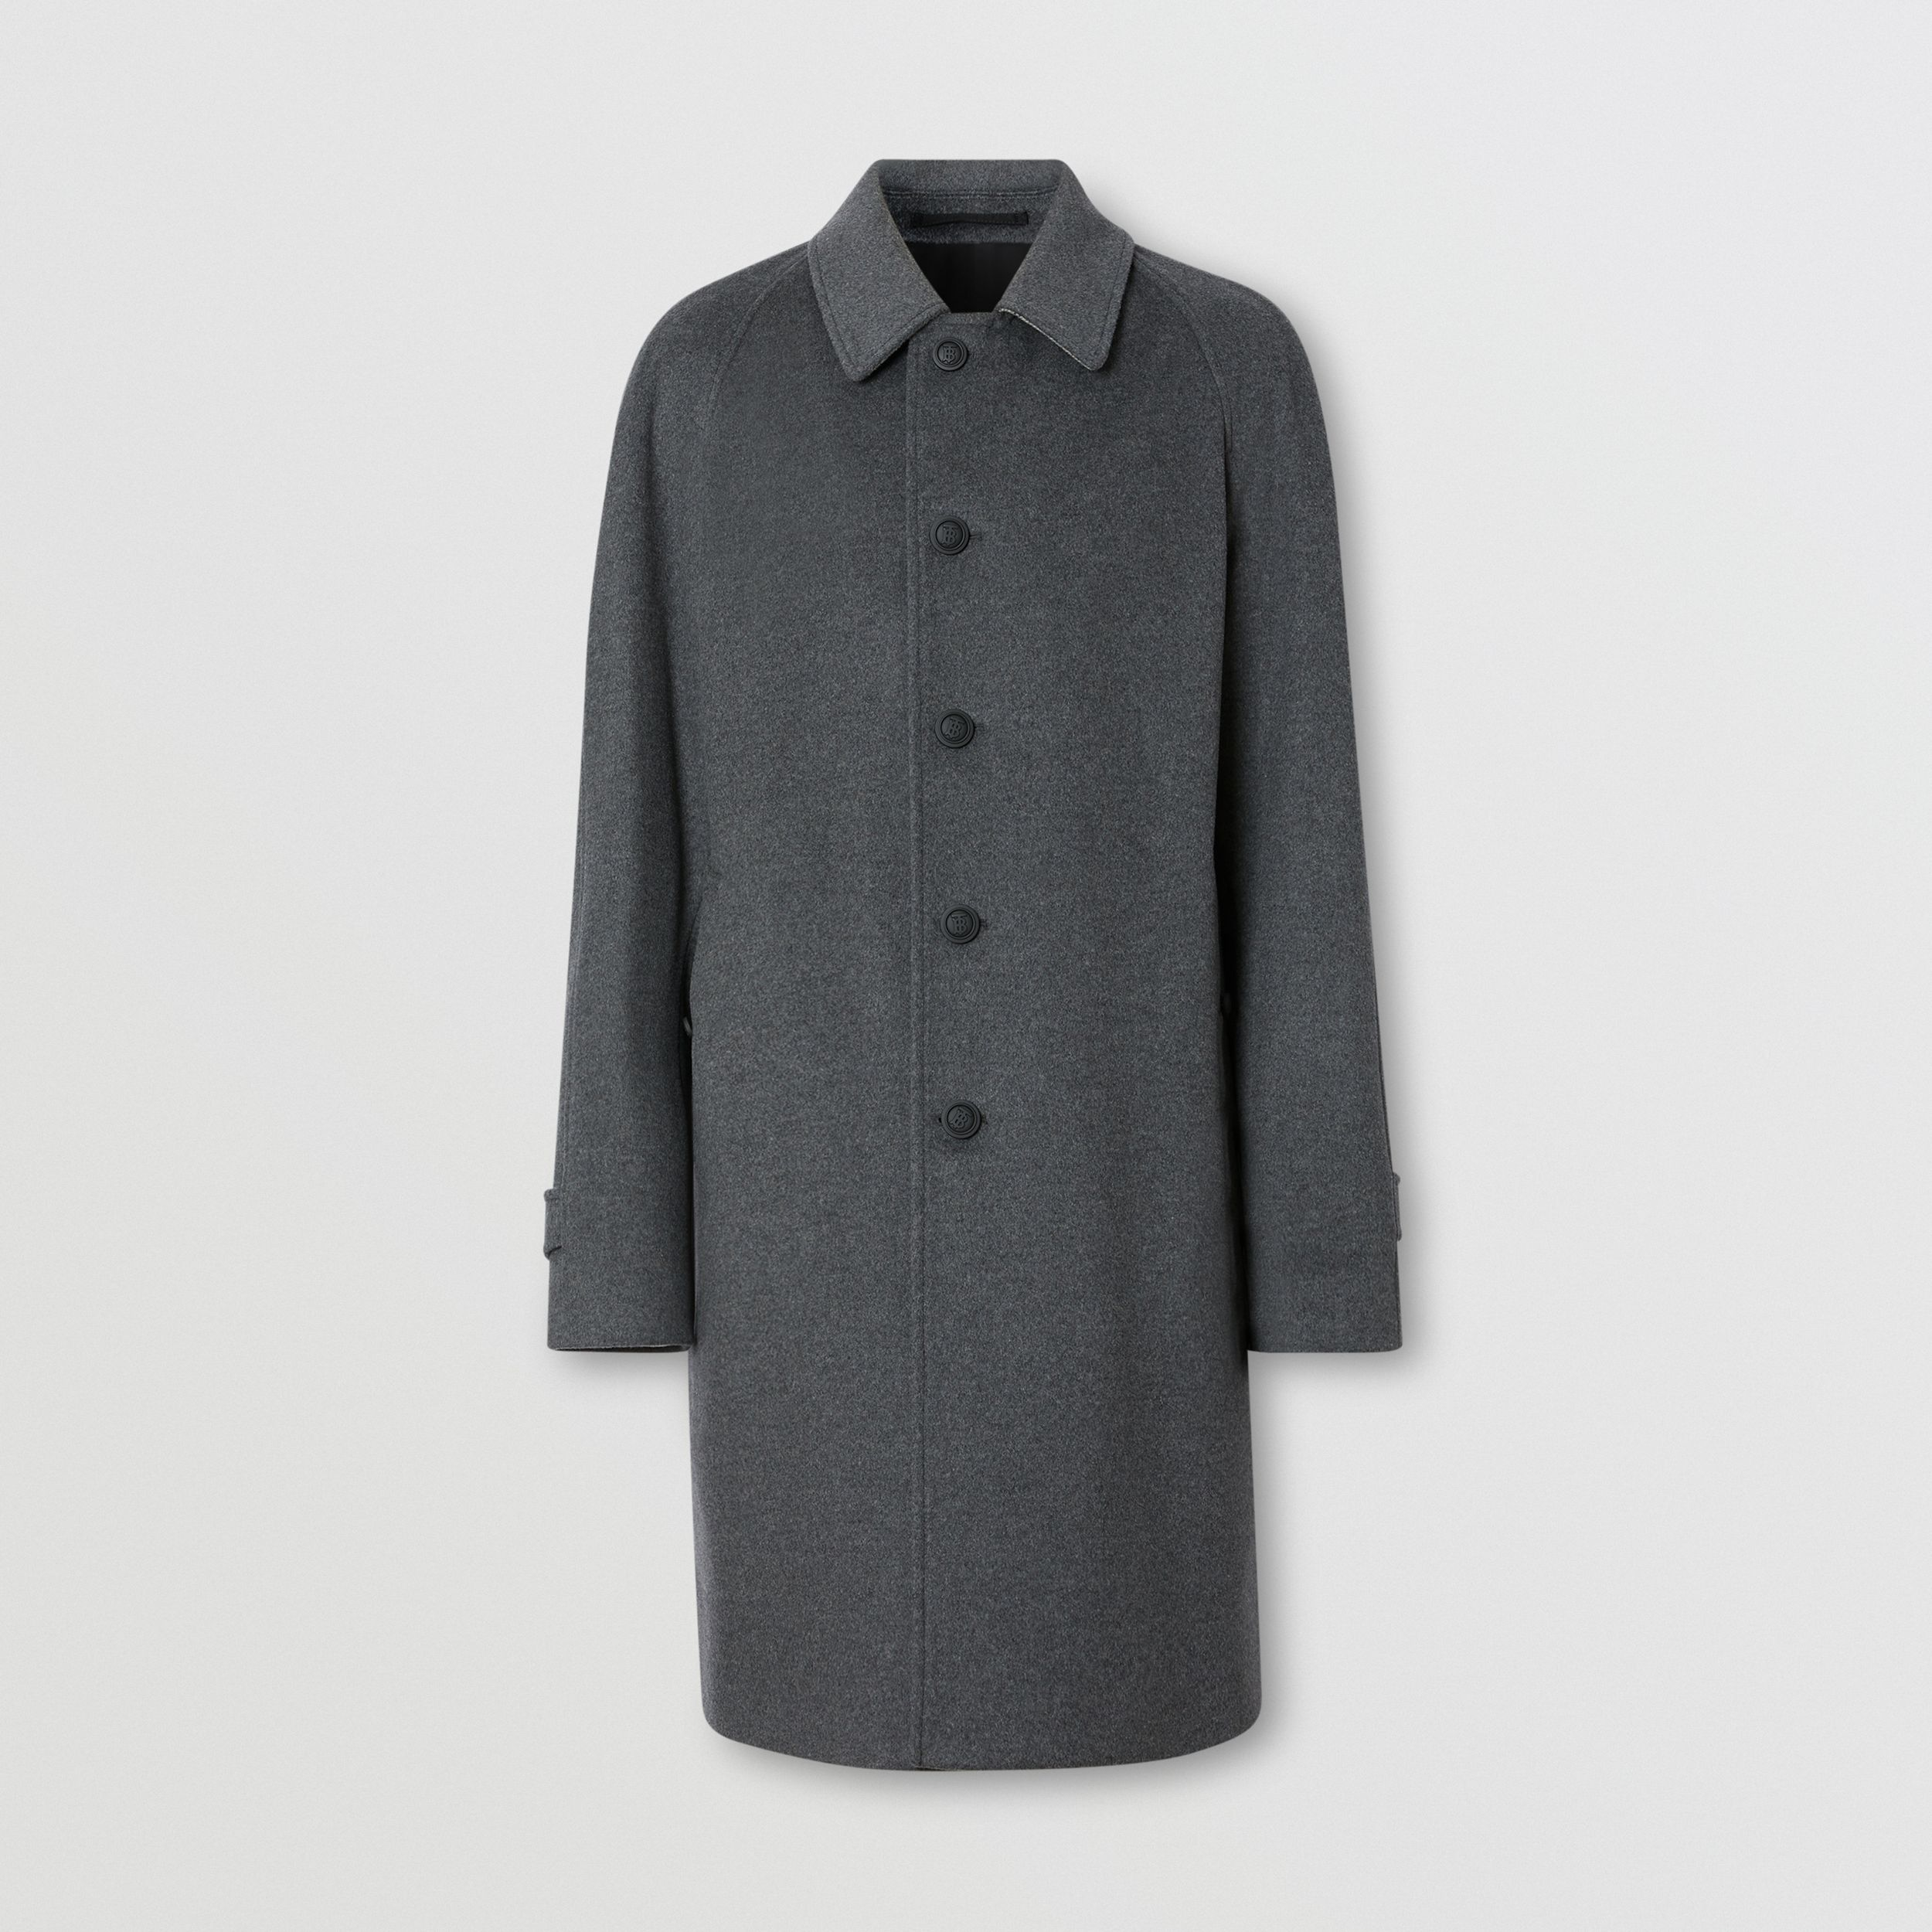 Button Detail Wool Cashmere Car Coat in Charcoal Melange - Men | Burberry - 4